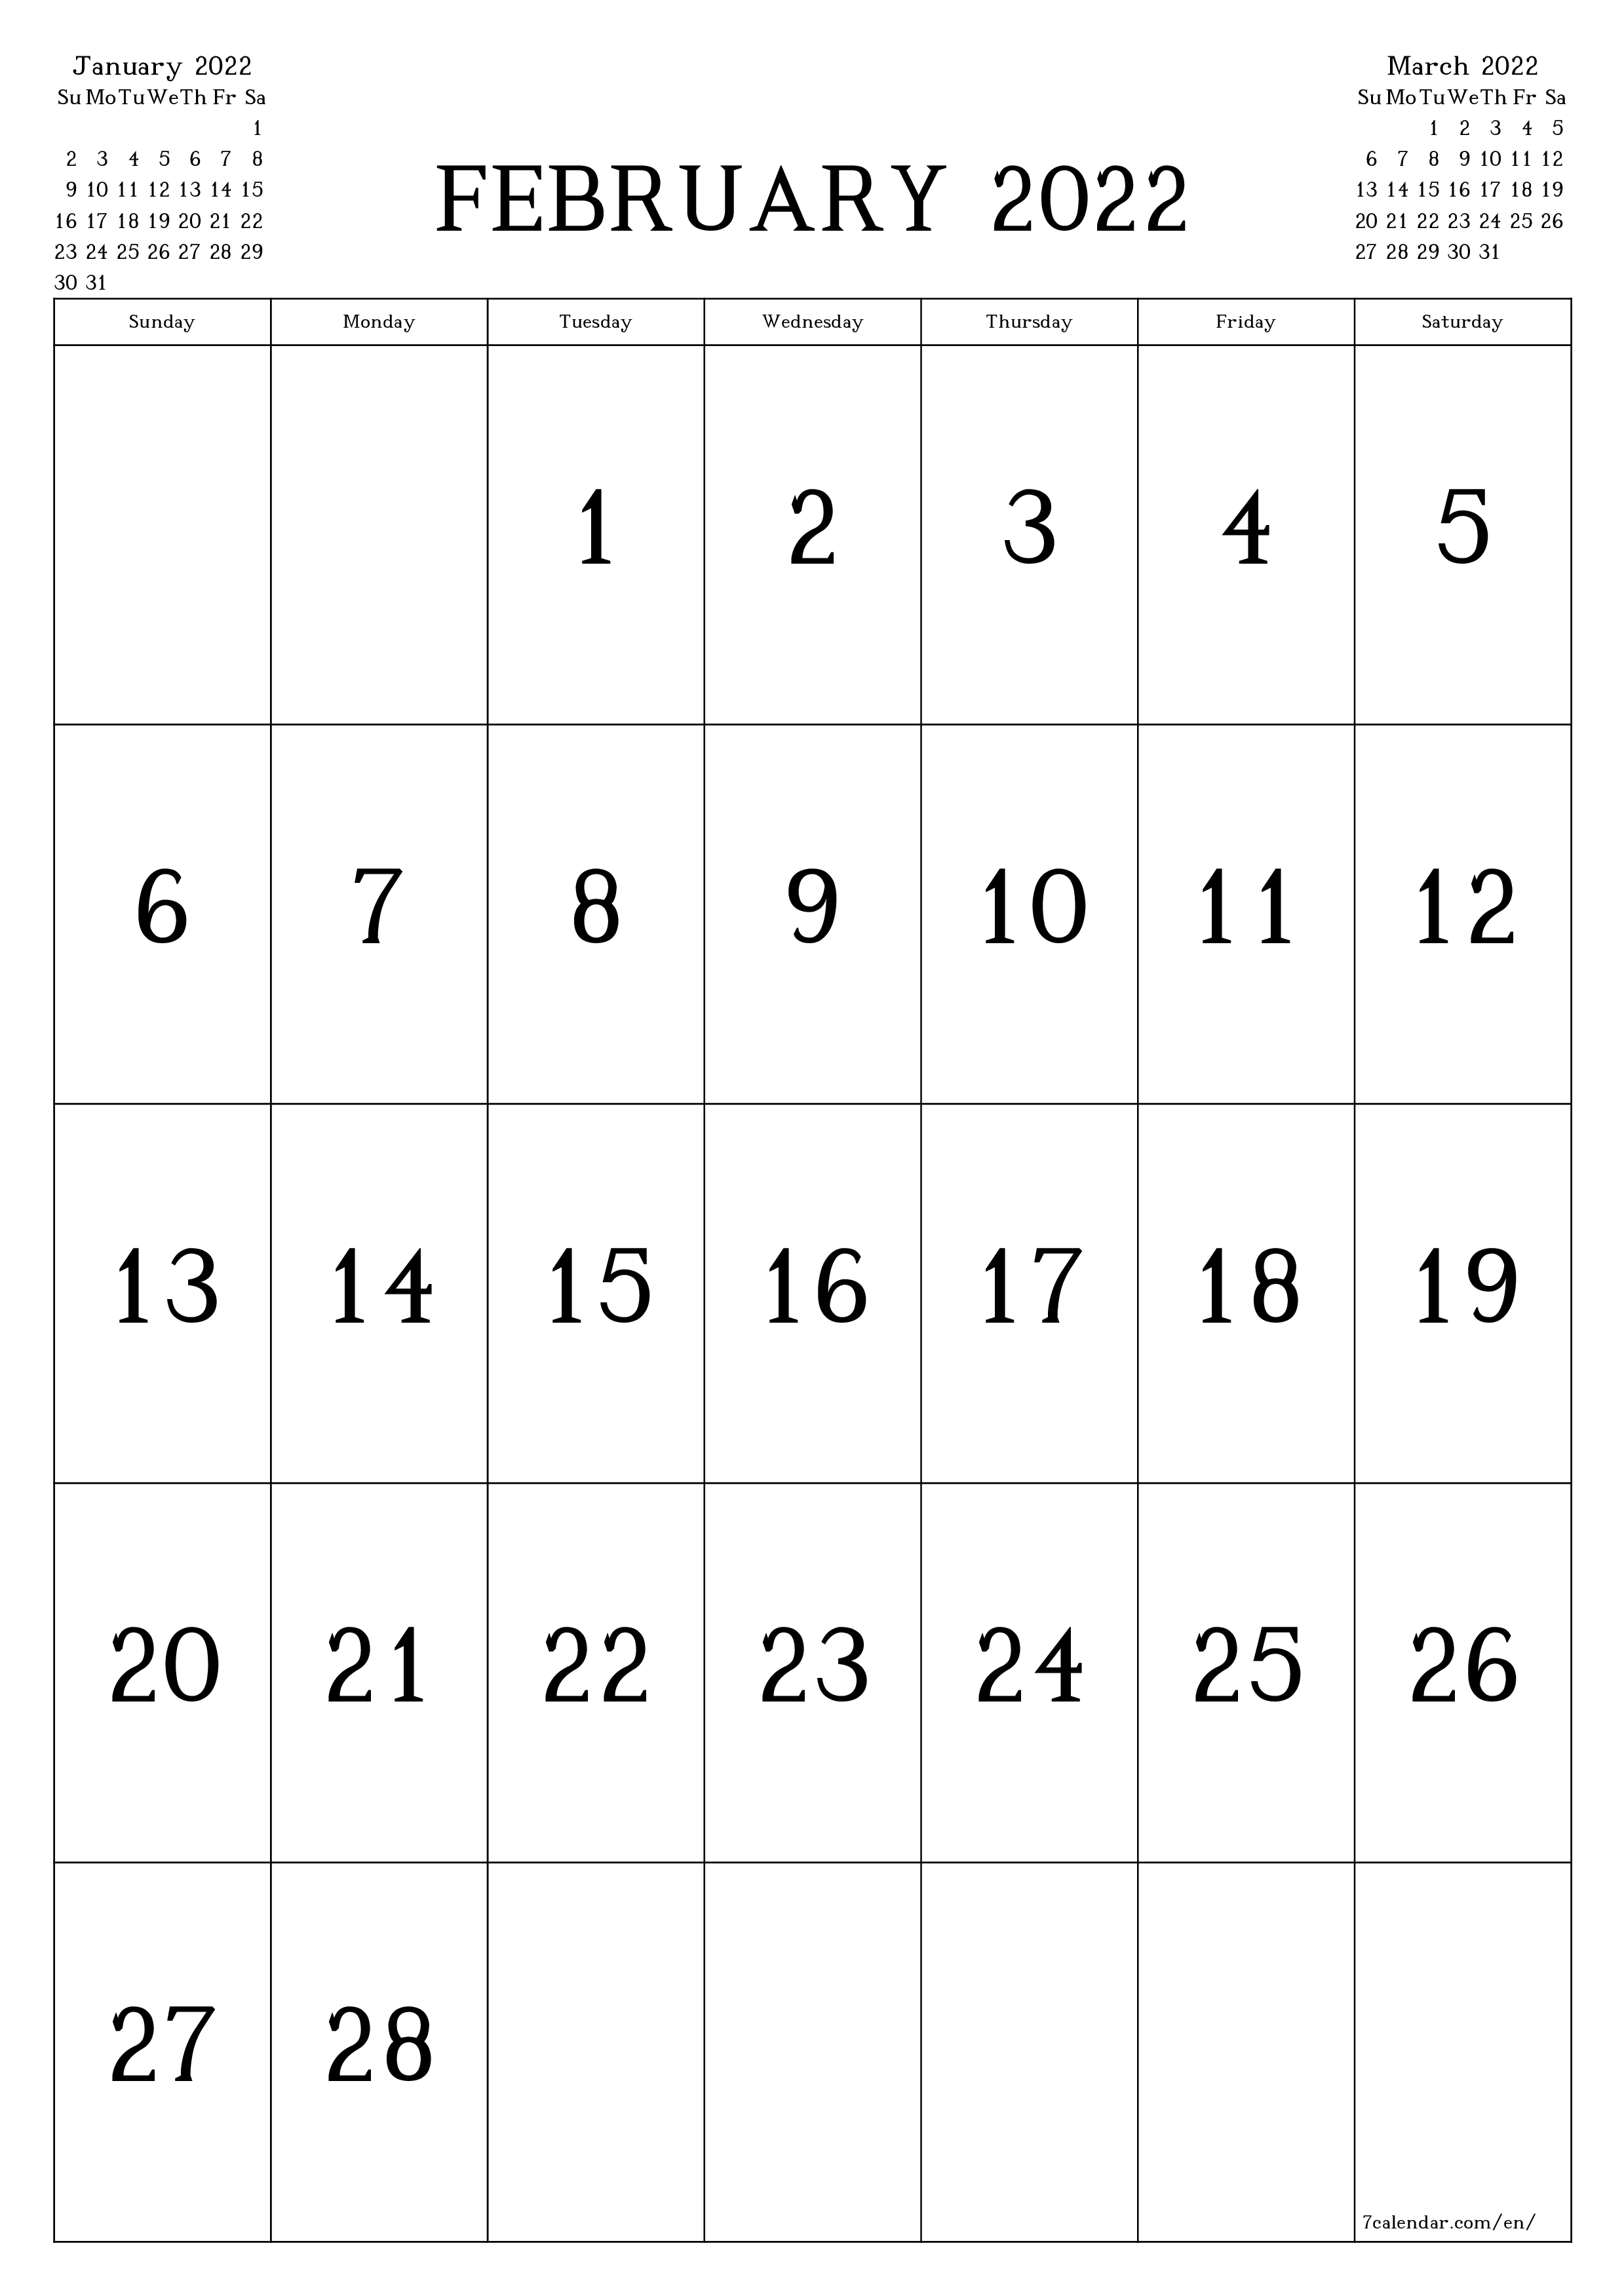 Blank monthly calendar for month February 2022 save and print to PDF  - 7calendar.com